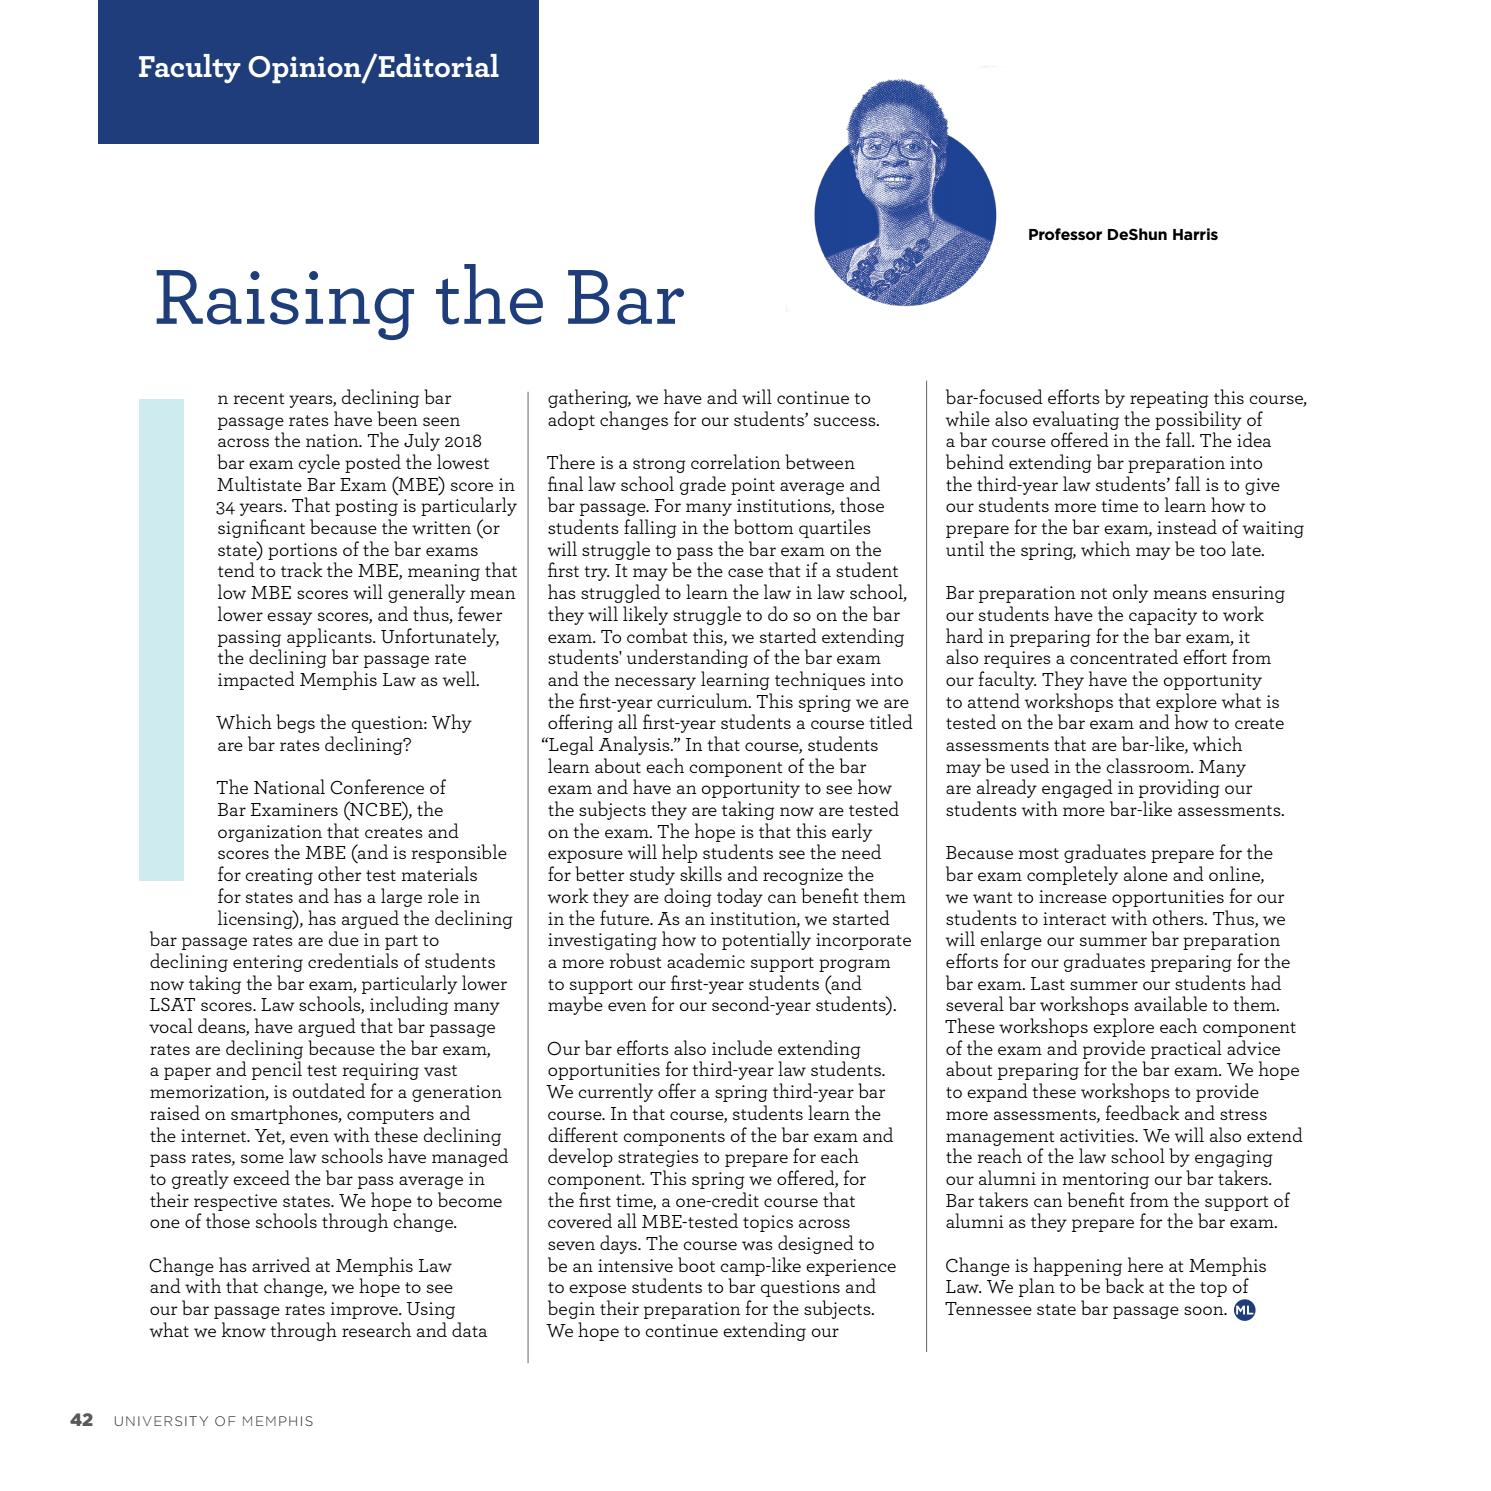 Memphis Law Spring 2019 by University of Memphis - issuu